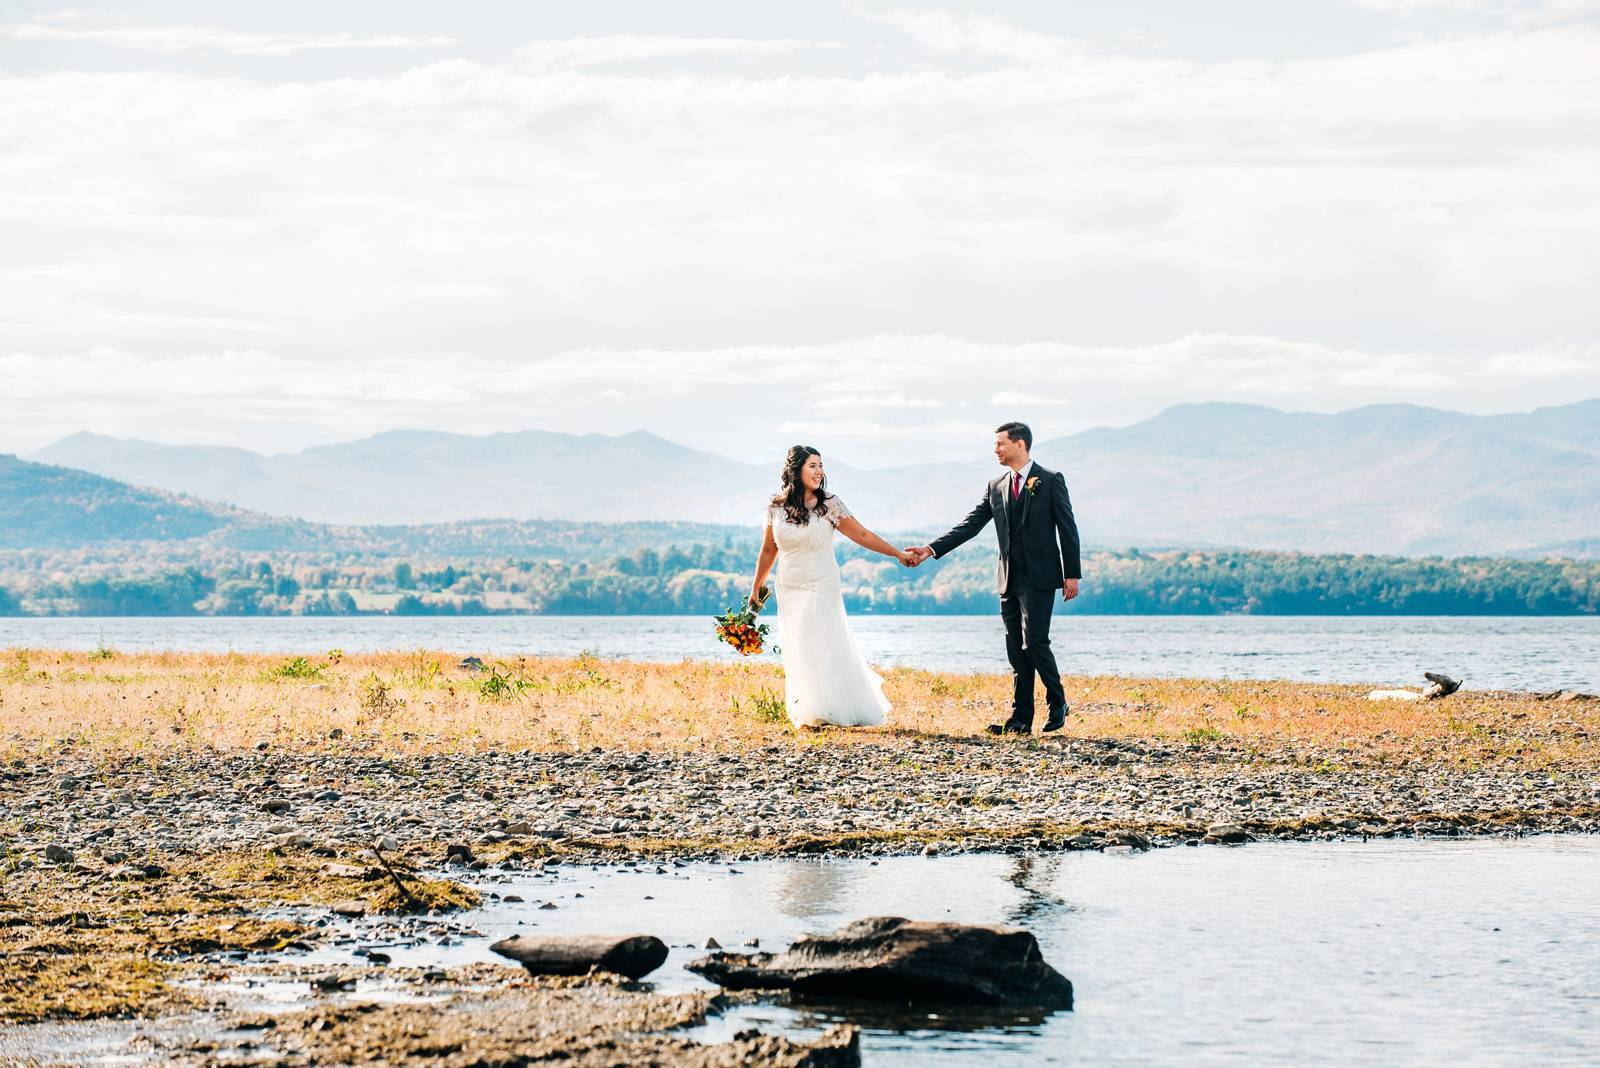 Bride and groom portrait walking along water's edge with mountains in background